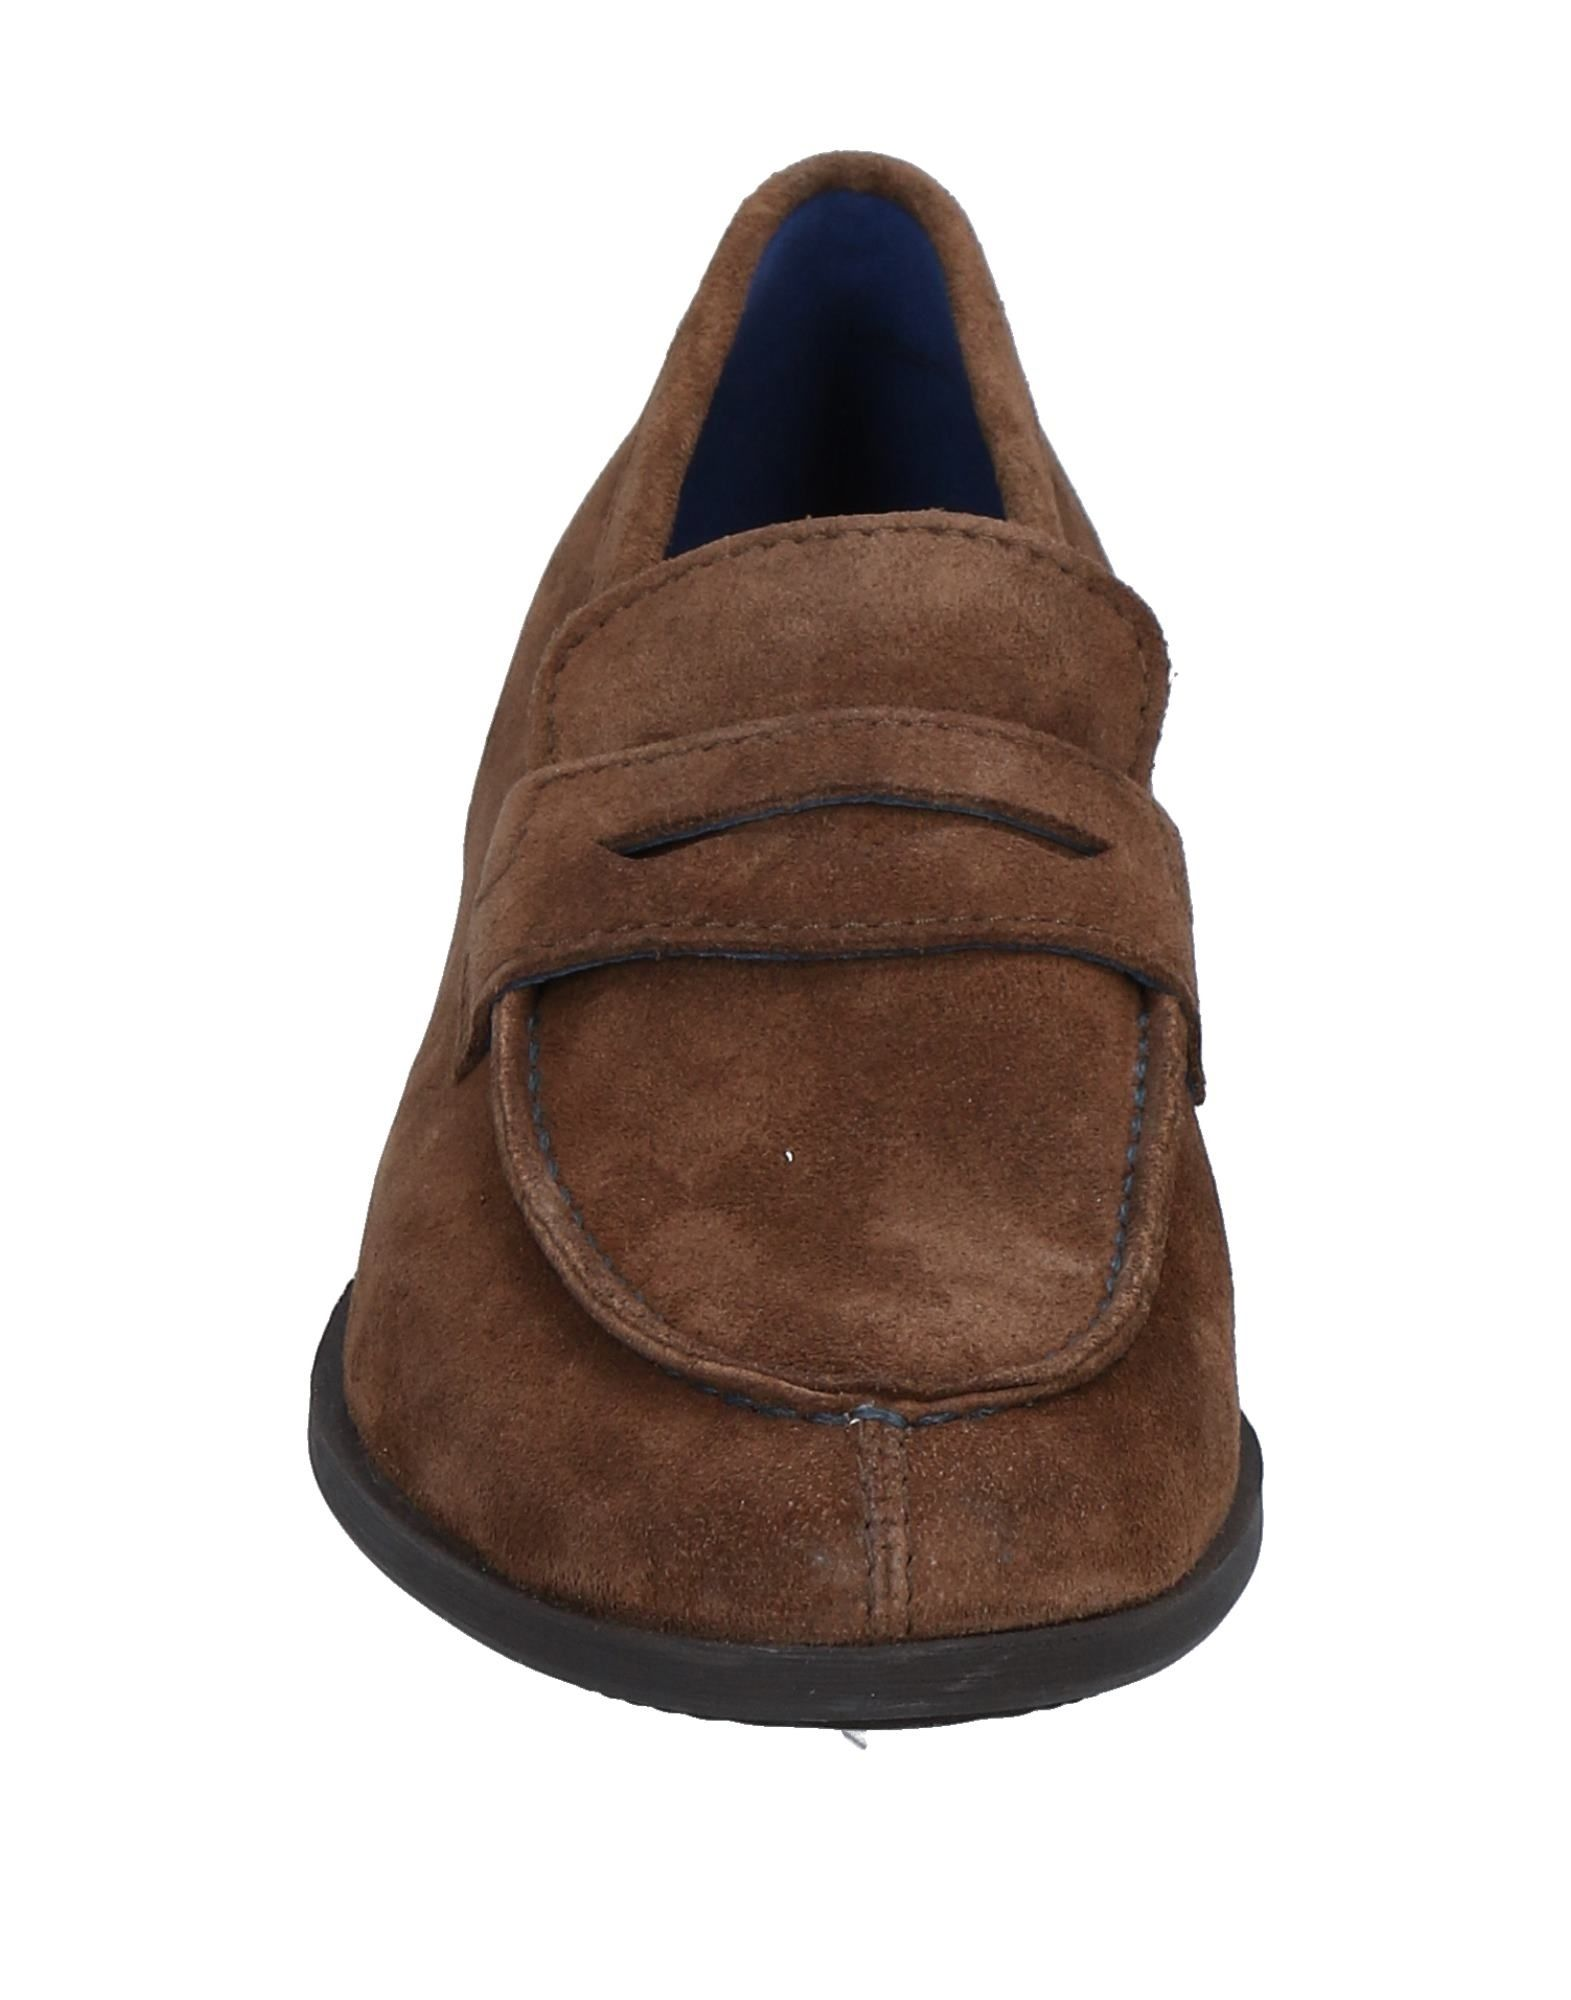 Geox Loafers - Men Geox Australia Loafers online on  Australia Geox - 11498715MH 5bb767